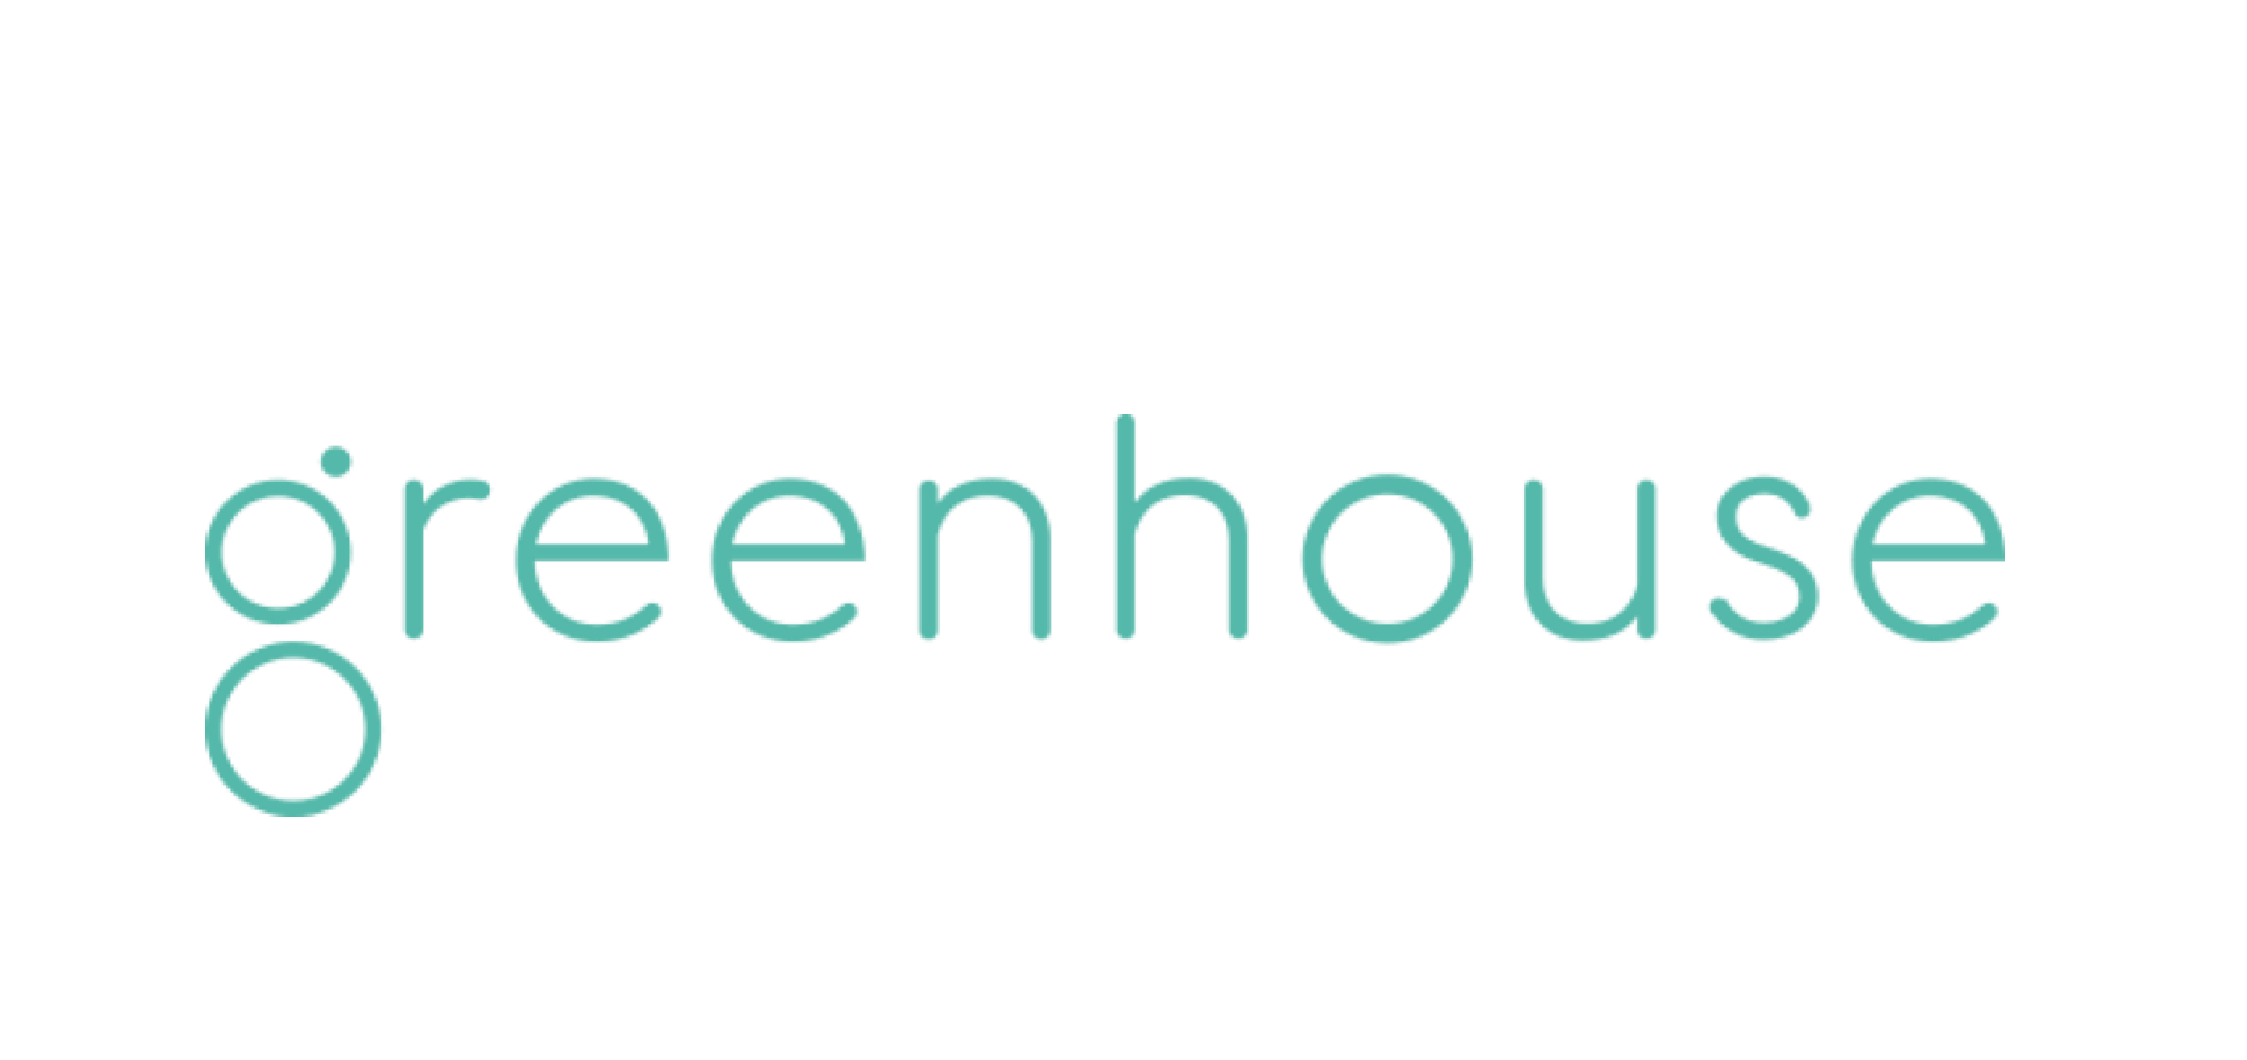 Greenhouse is an applicant tracking system and recruiting software designed to optimize your entire recruiting process.